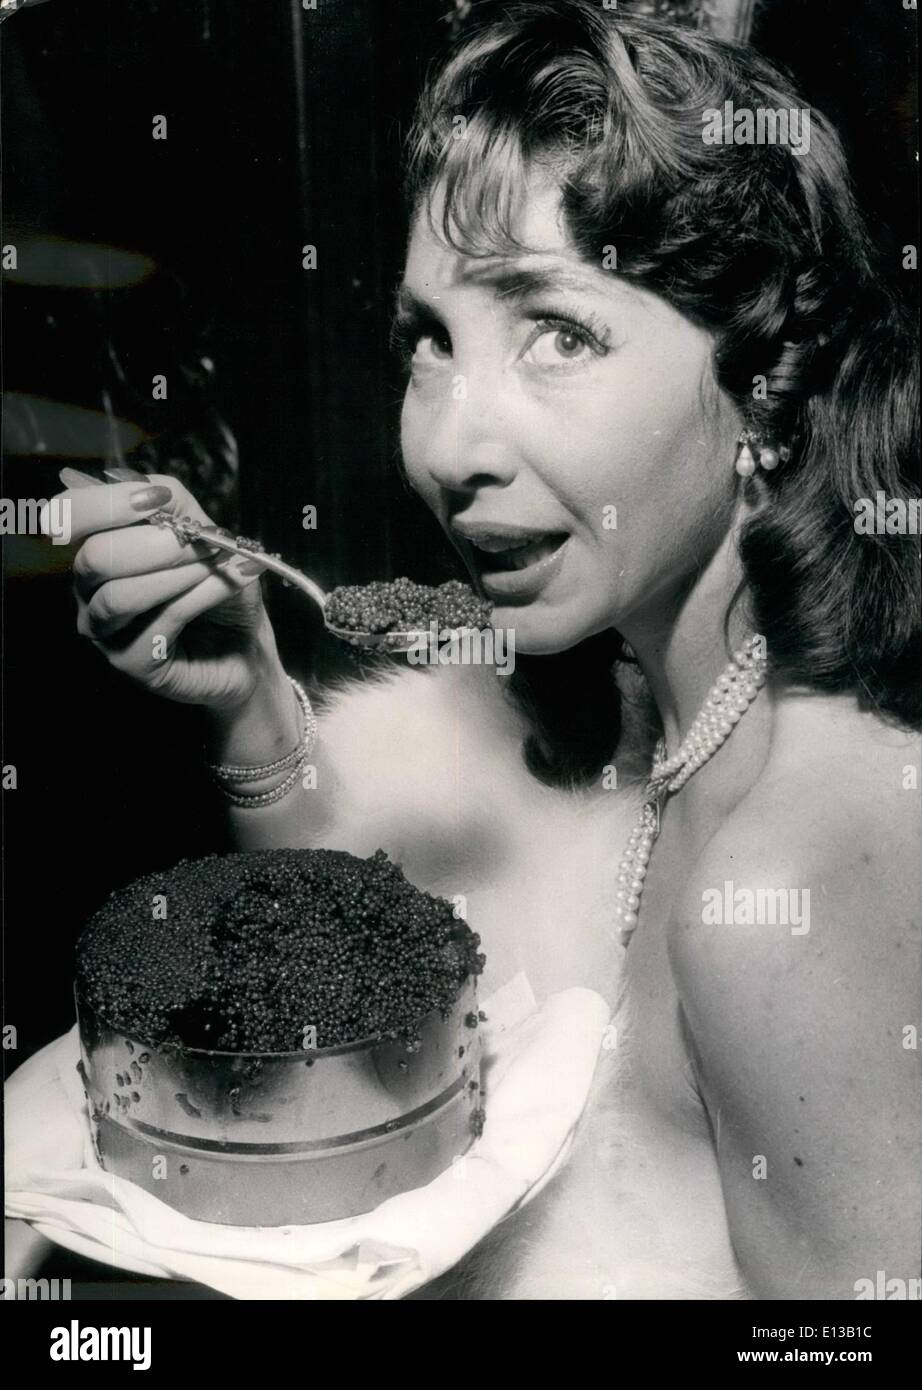 Feb. 29, 2012 - Meet Queen of Caviar. 28 year old Dominique Varga, a cabaret singer, was elected Queen of Caviar at a party held at the Auberge D'Amaille, one of the Paris most famous restaurants. The new ''Majesty '' was given as a present... Her weight in Caviar (A costly present a kilo of caviar being sold at 5!). OPS Dominique tasting caviar, out of the boxes she received as a present. - Stock Image